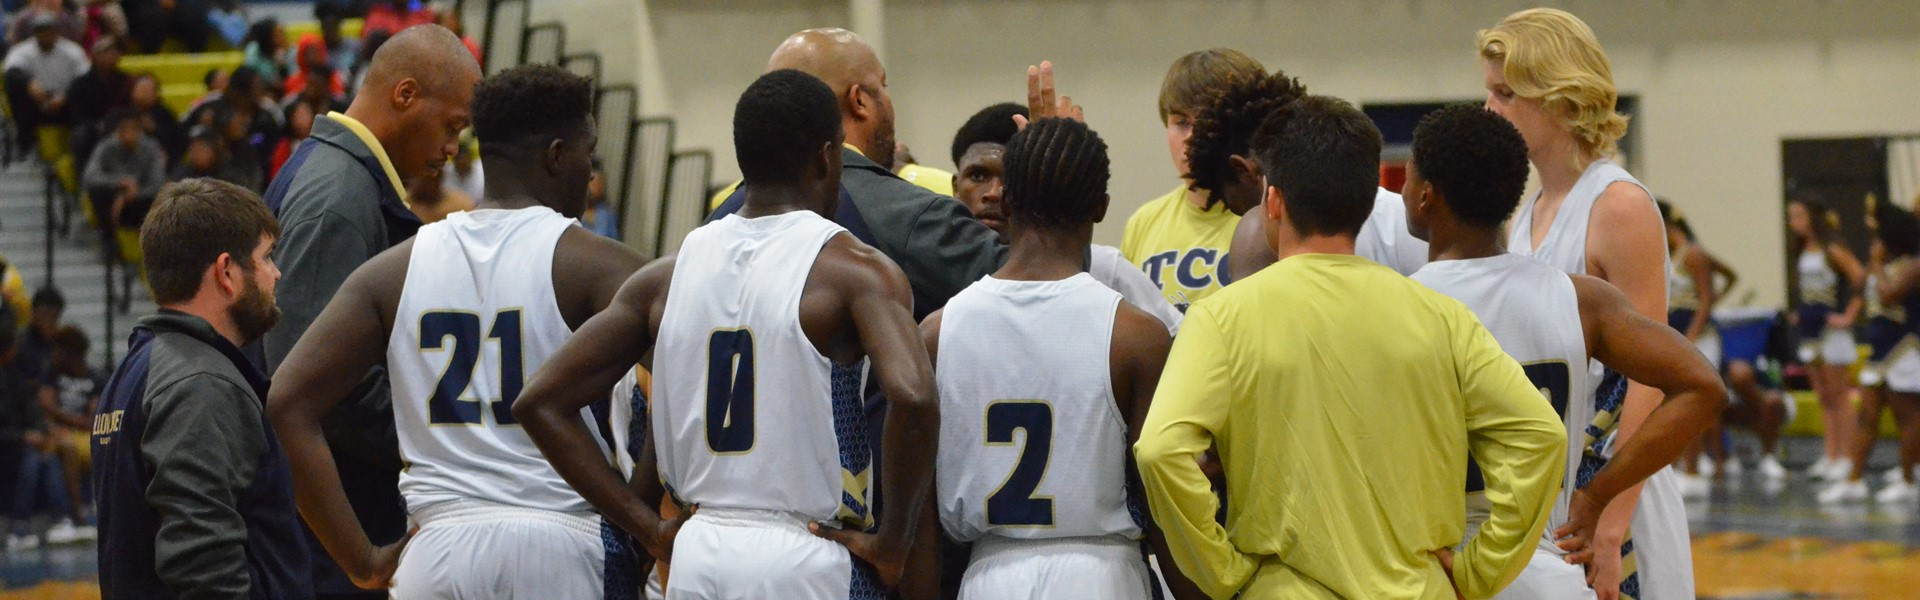 TCCHS boys basketball coach, Wil Lewis, speaks with his team during a time out at a recent game.